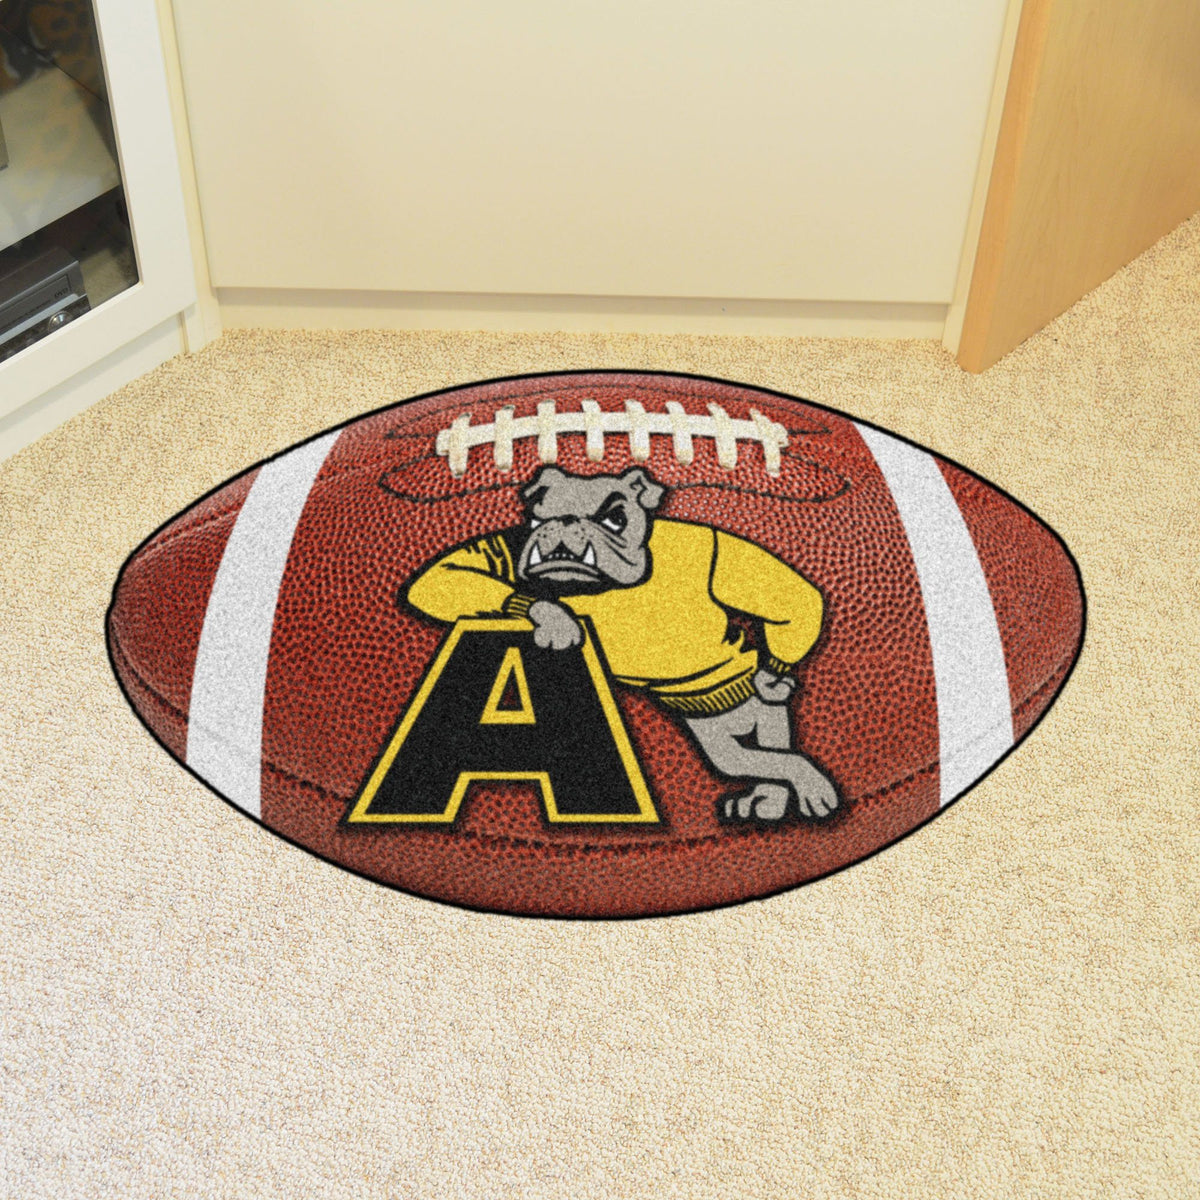 Collegiate - Football Mat: A - K Collegiate Mats, Rectangular Mats, Football Mat, Collegiate, Home Fan Mats Adrian College